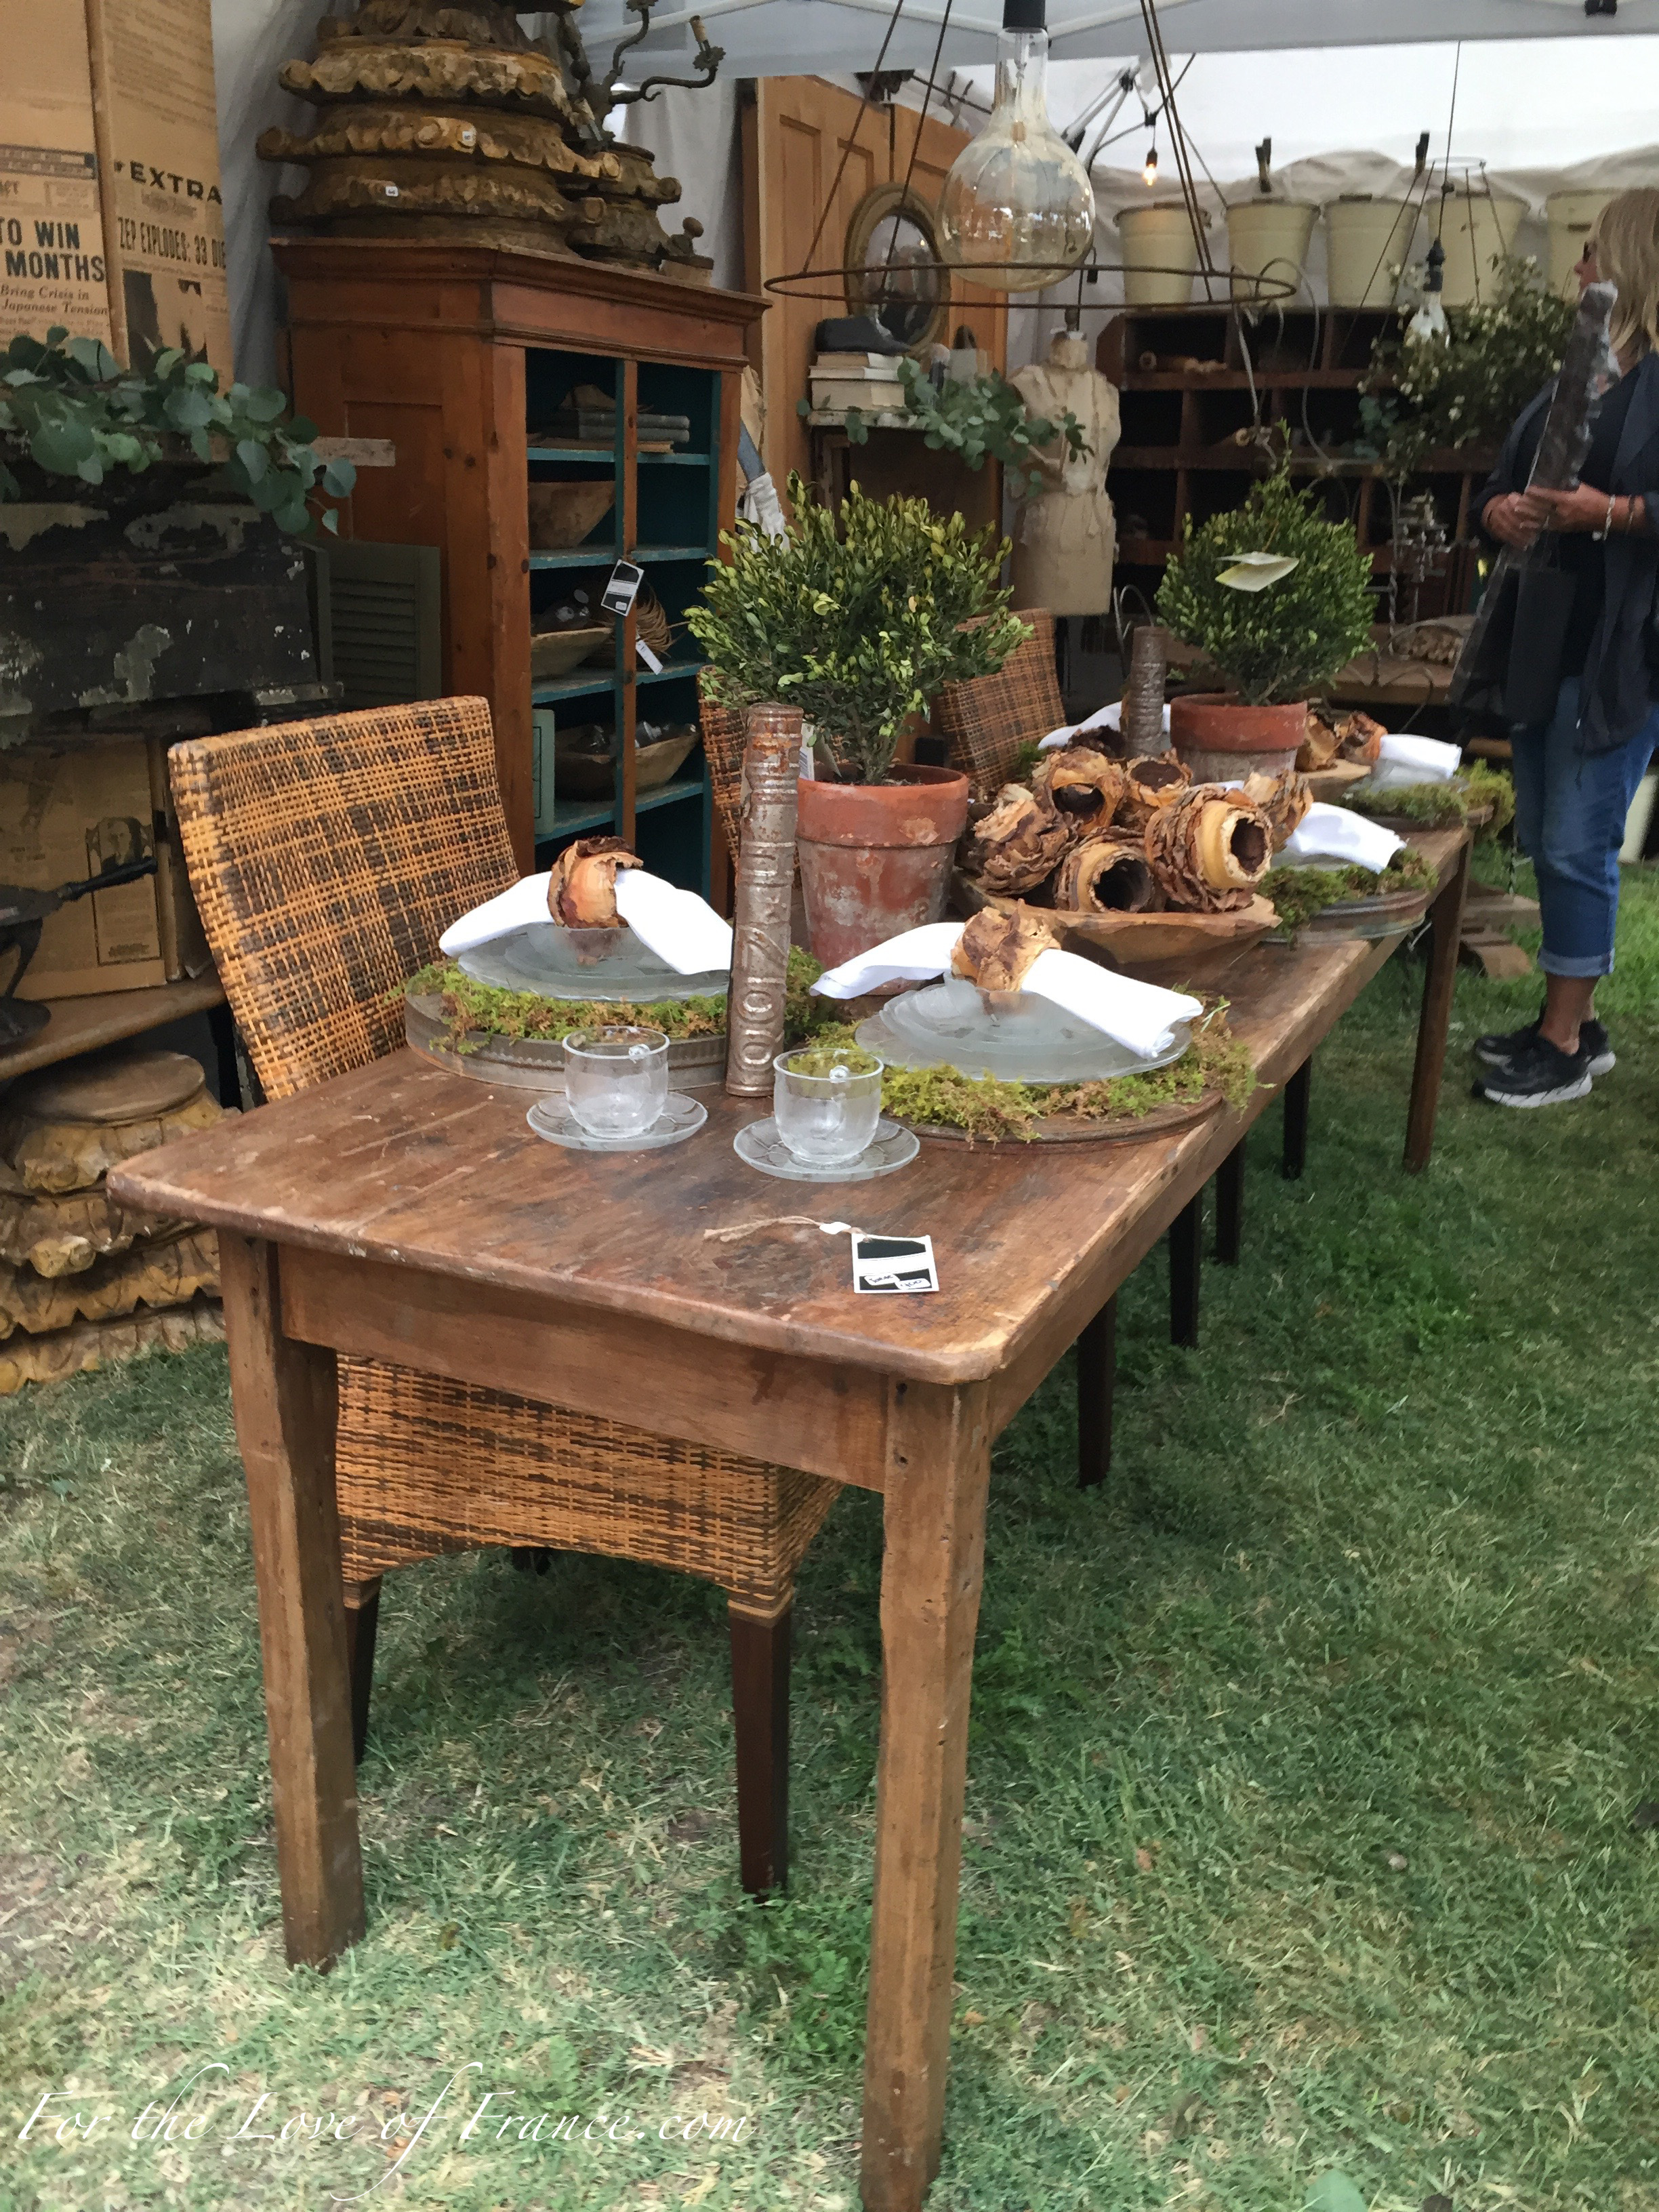 Vintage farm table set with autumn decor